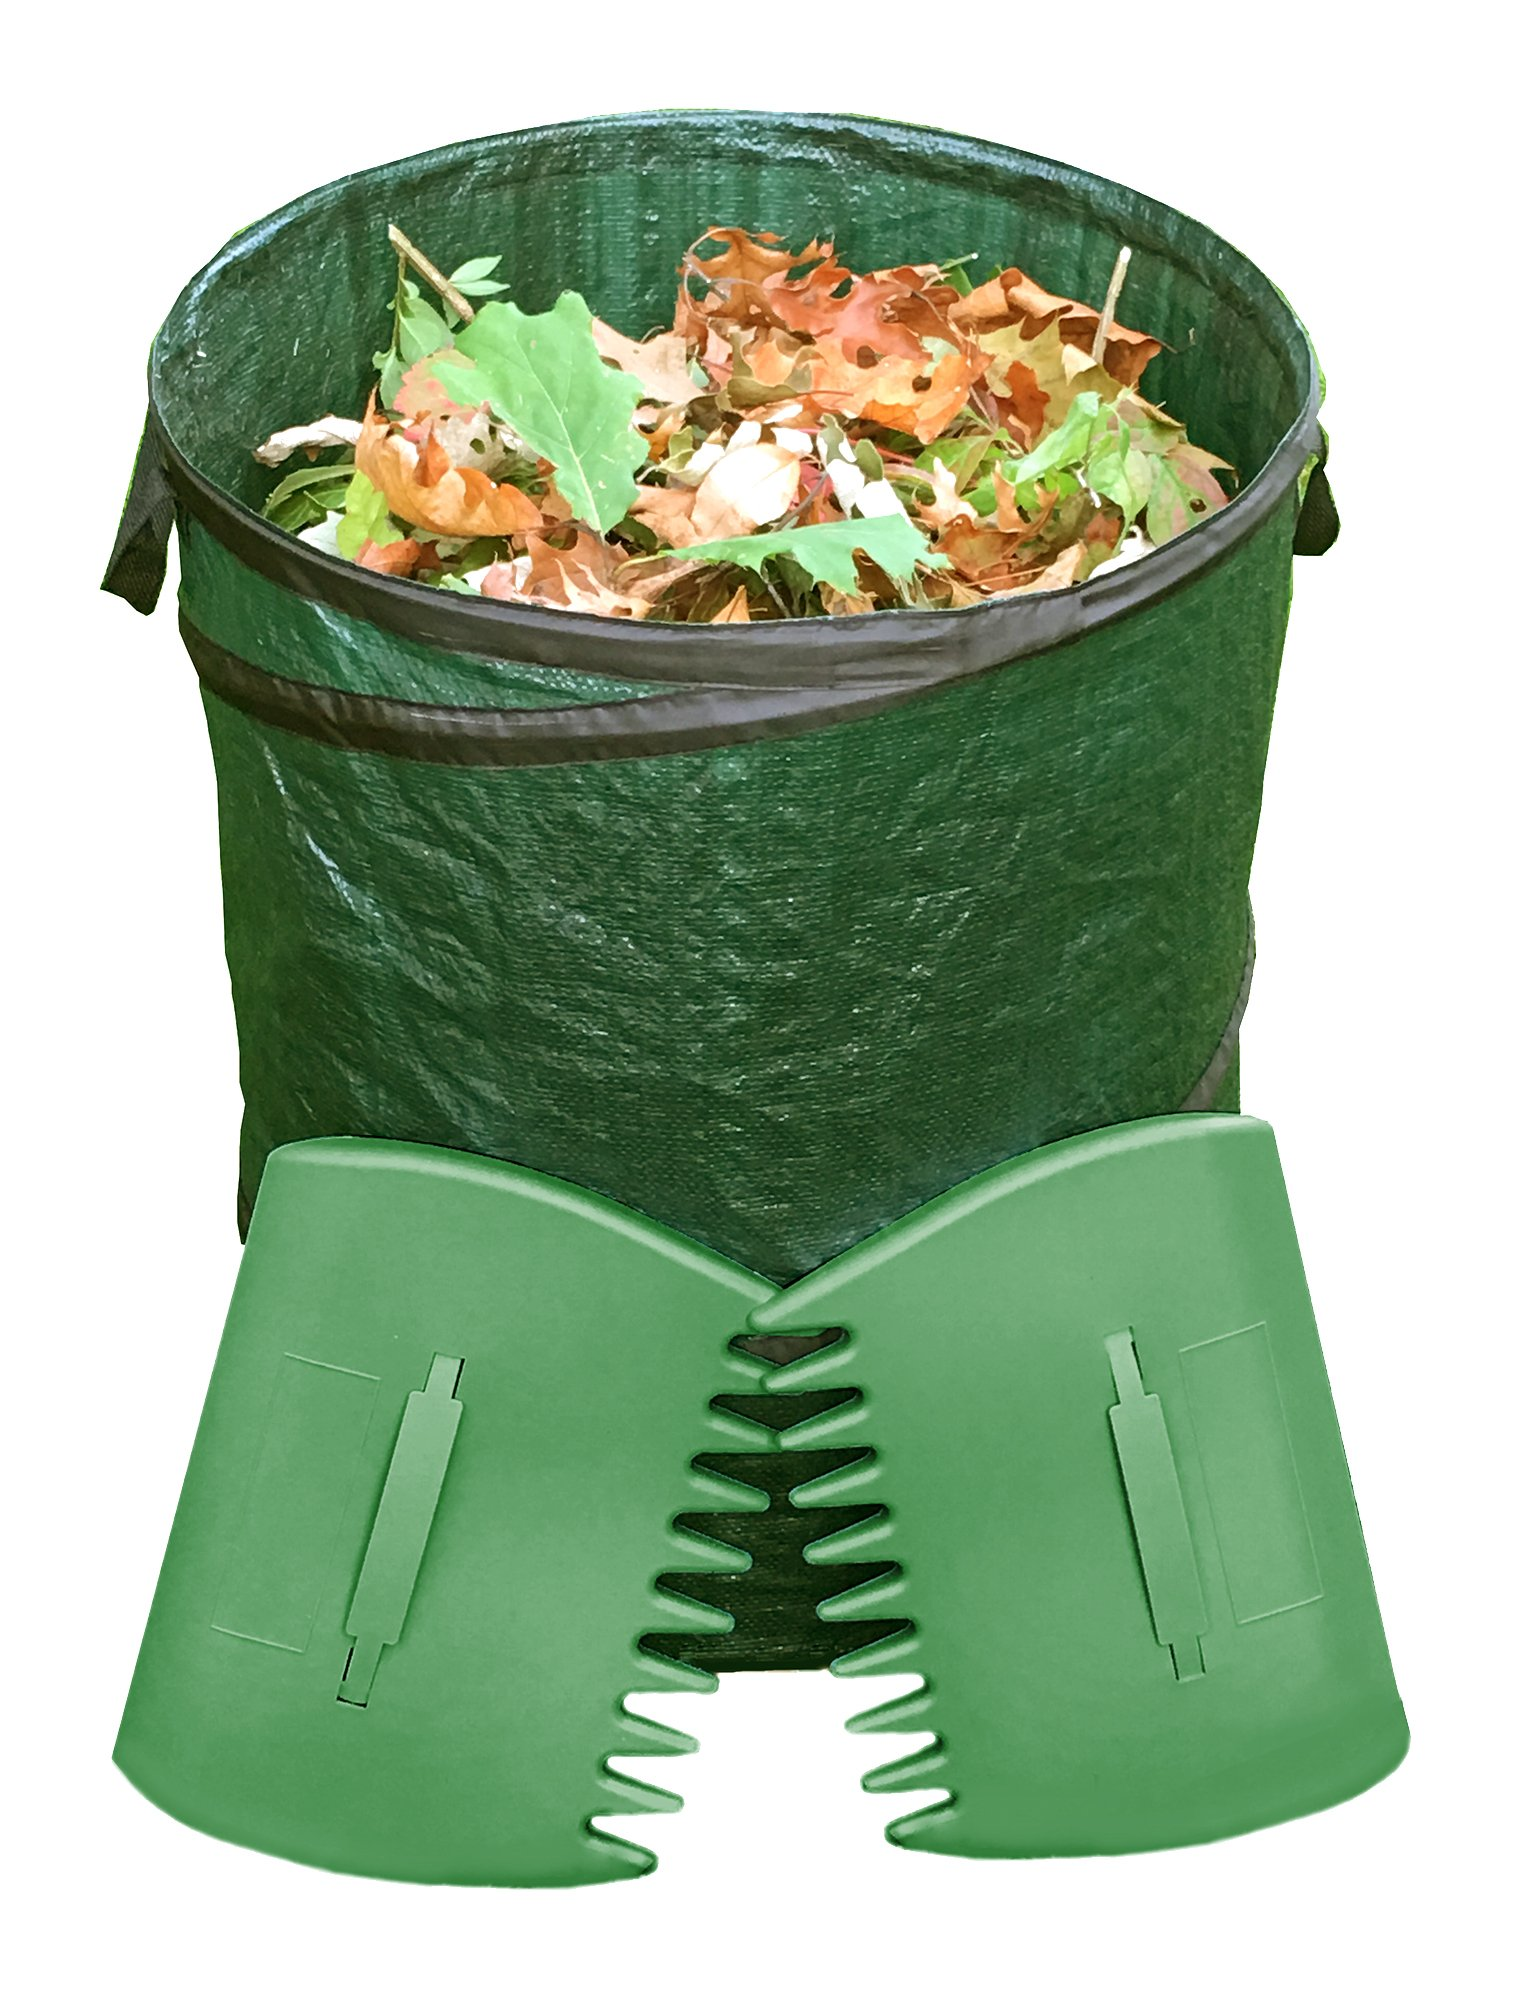 Fern and Foliage Lawn Bags Pop Up Leaf Bag 2 Leaf Grabbers Scoops - Heavy Duty 32 Gallon Reusable Collapsible Garden Bag Yard Waste Container